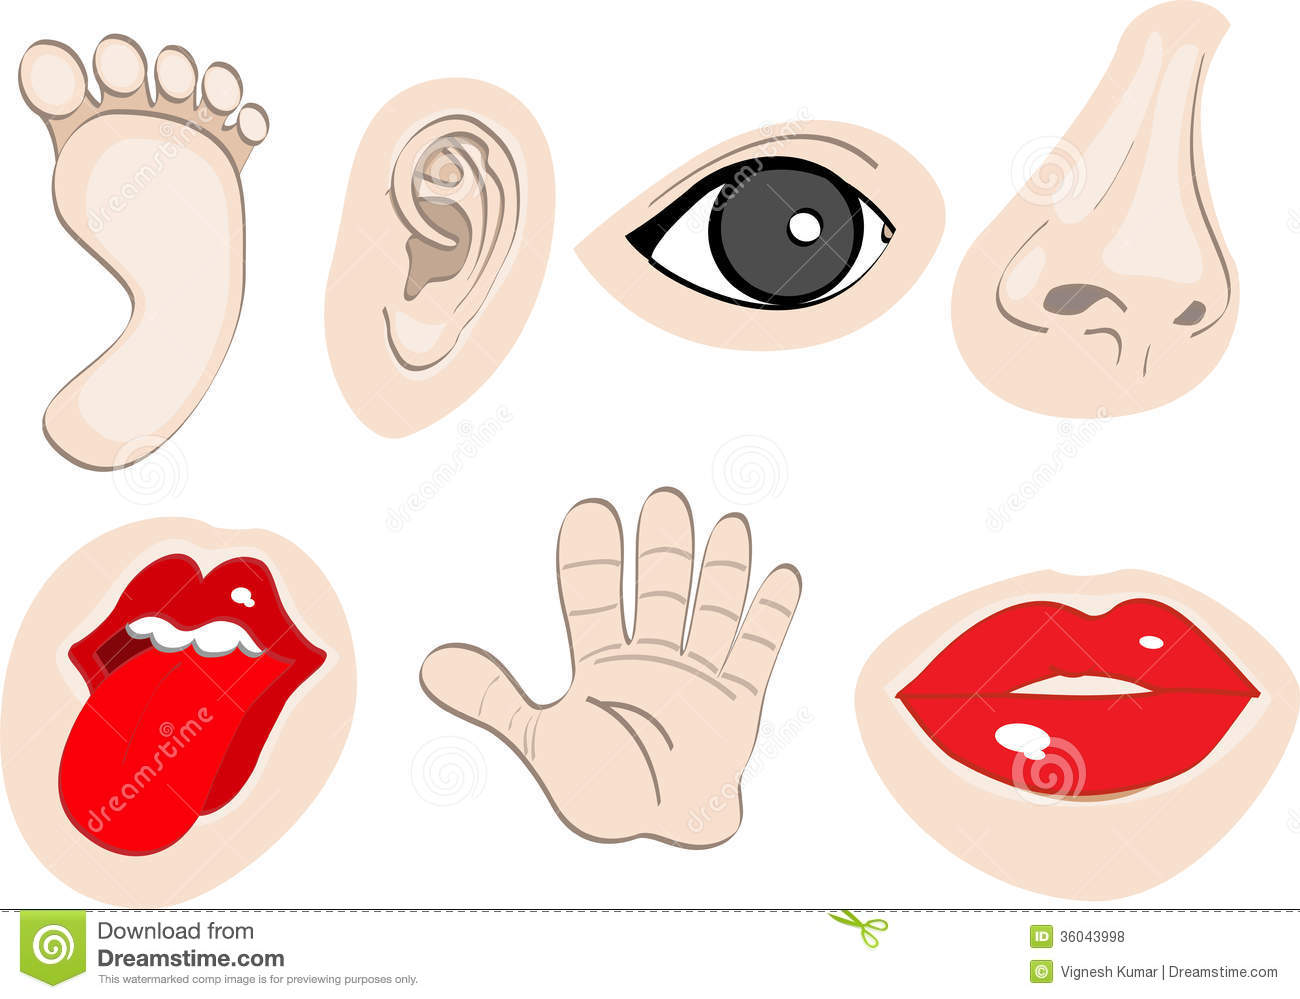 Human body parts clipart.